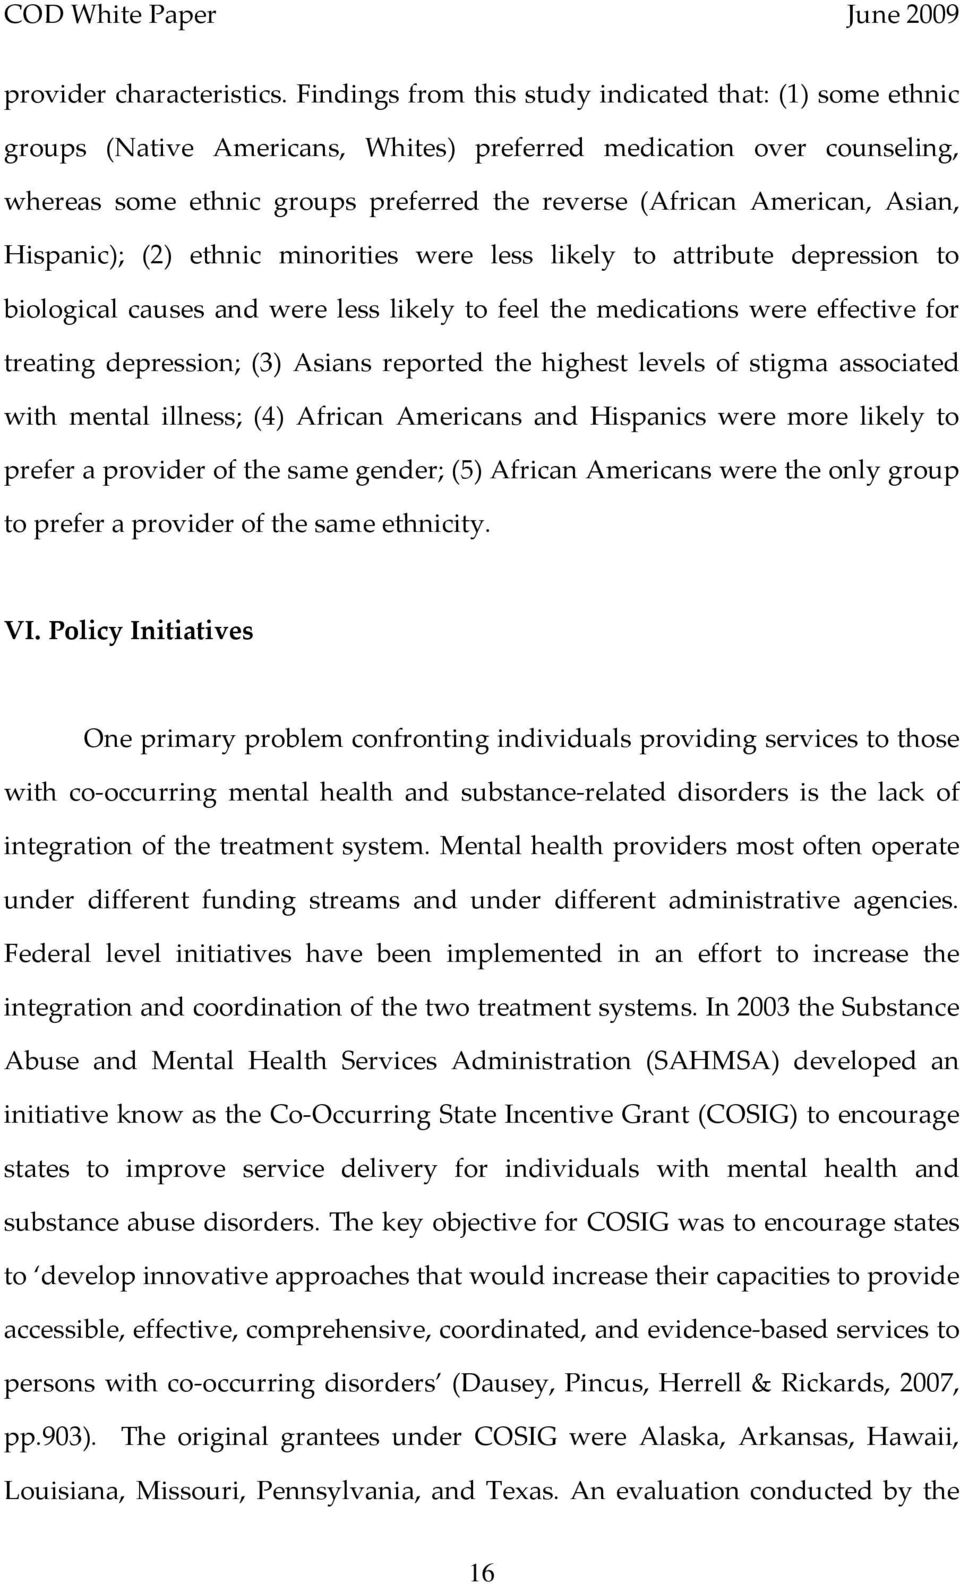 Asian, Hispanic); (2) ethnic minorities were less likely to attribute depression to biological causes and were less likely to feel the medications were effective for treating depression; (3) Asians